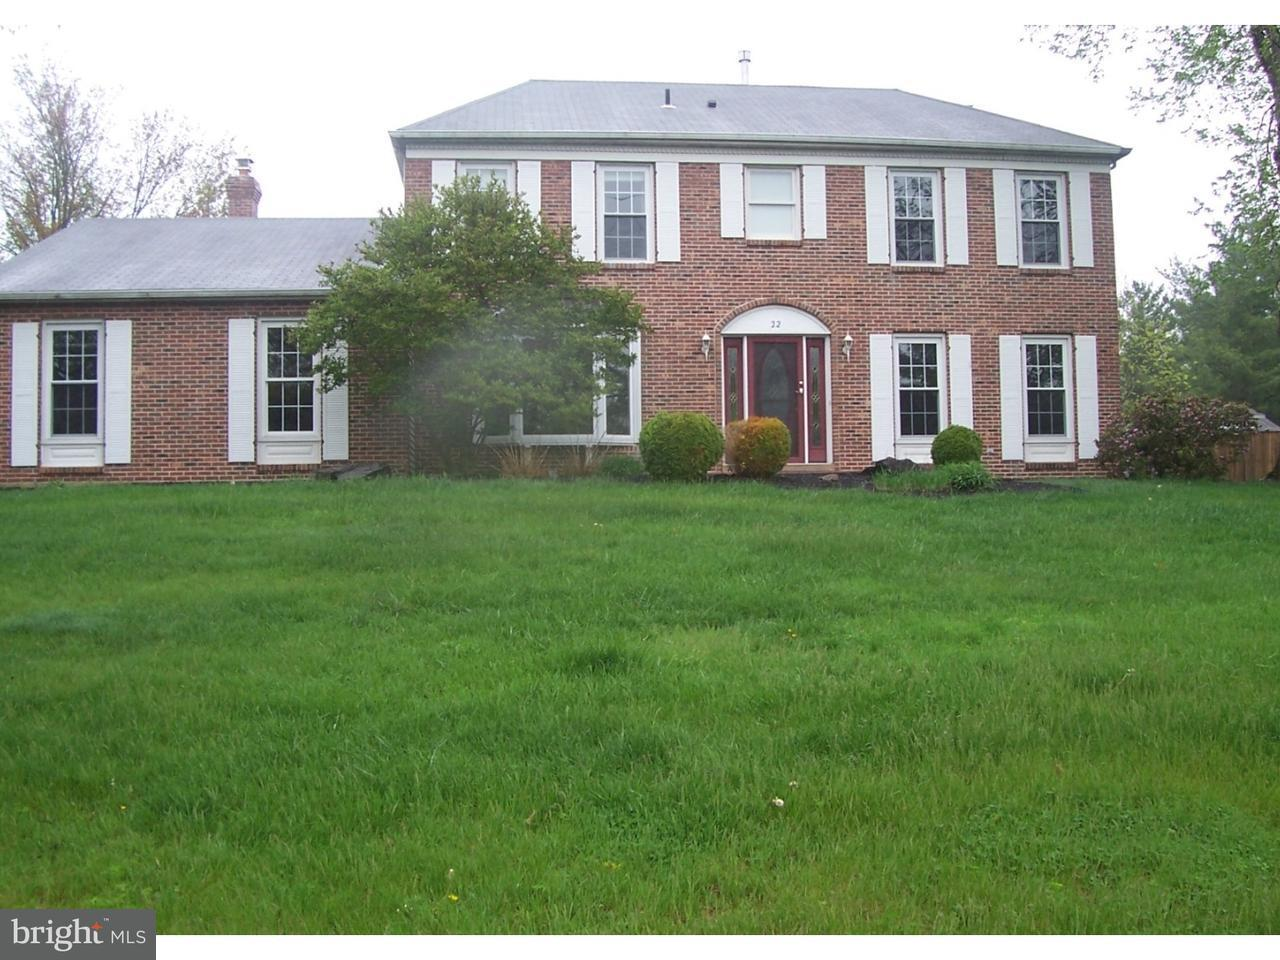 Single Family Home for Sale at 22 WINTHROP Road Lawrence, New Jersey 08648 United StatesMunicipality: Lawrence Township